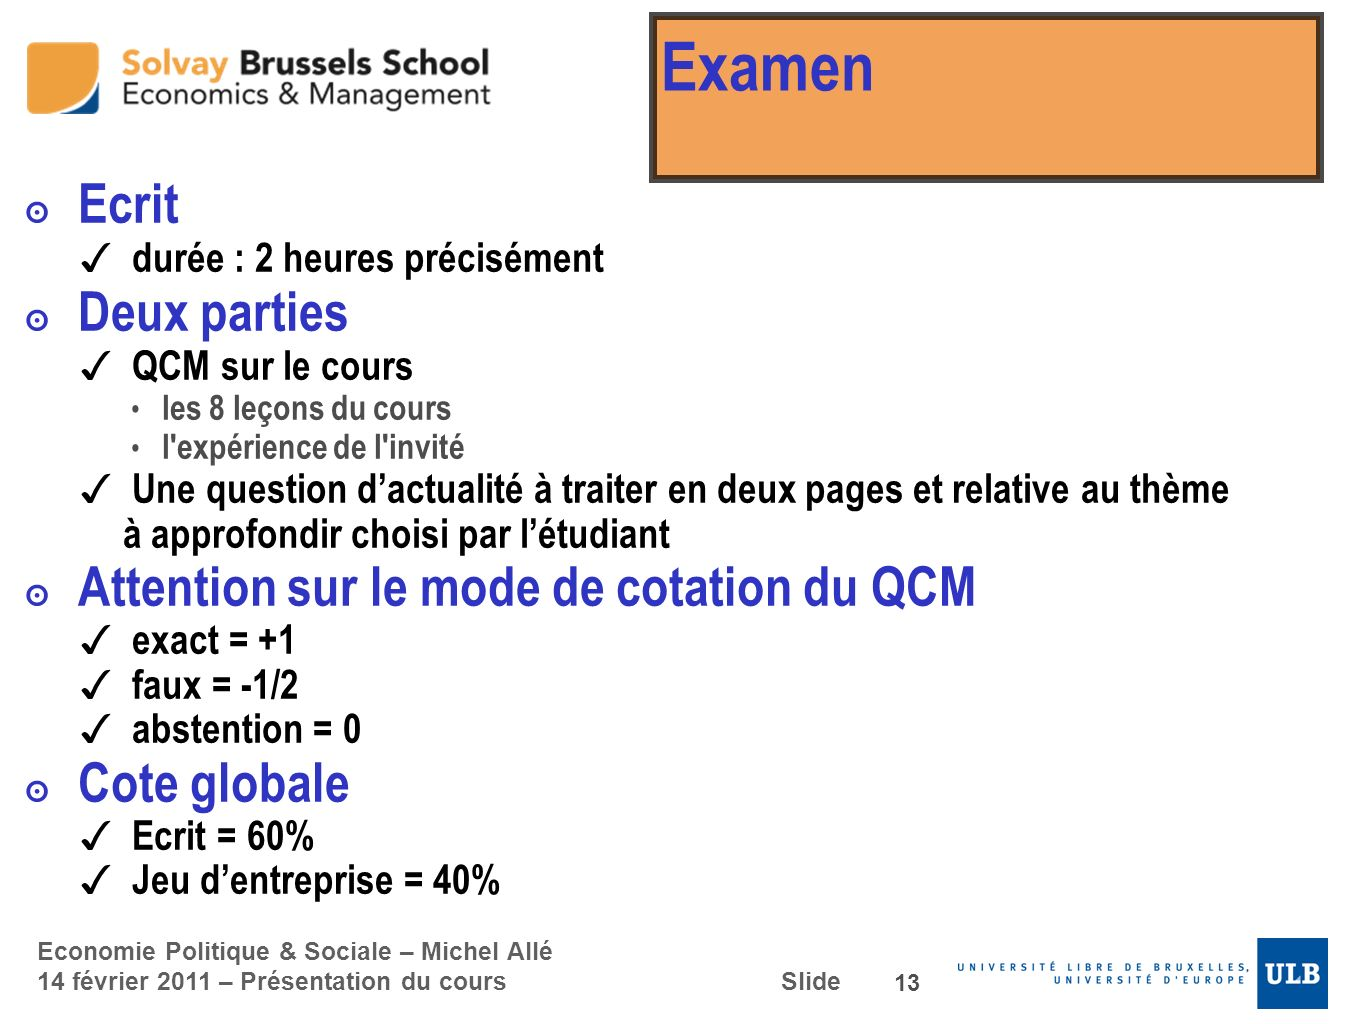 Examen Ecrit Deux parties Attention sur le mode de cotation du QCM